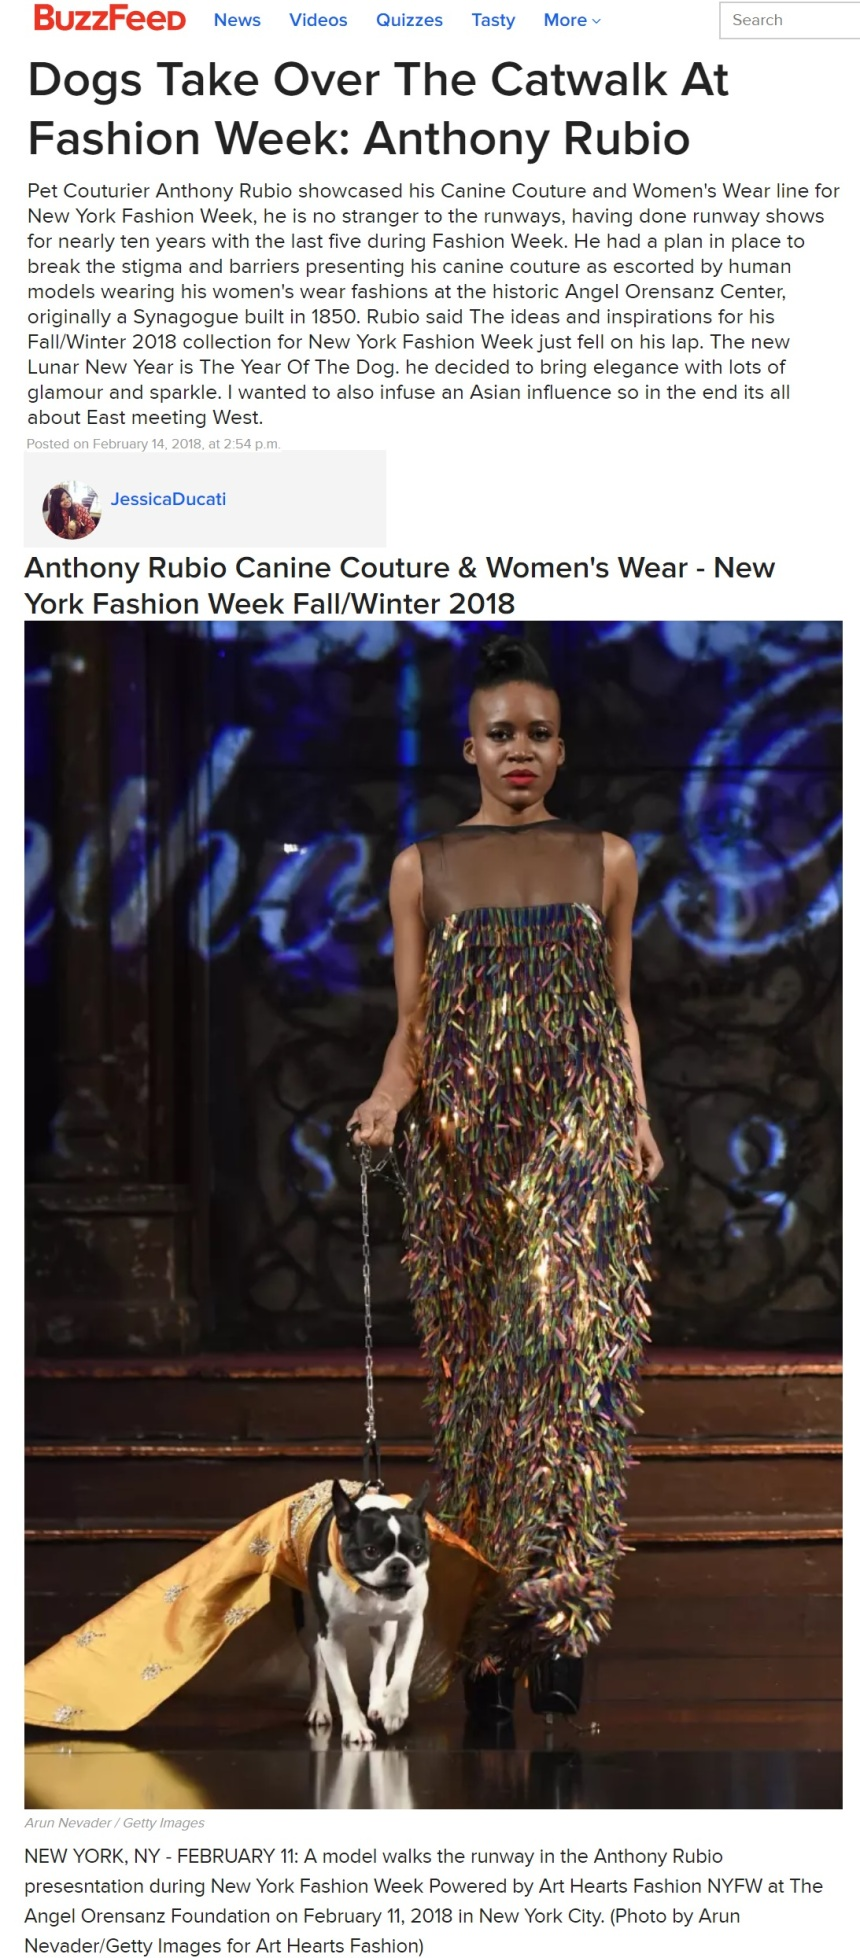 Anthony Rubio's NYFW runway show covered by BuzzFeed. Canine Couture